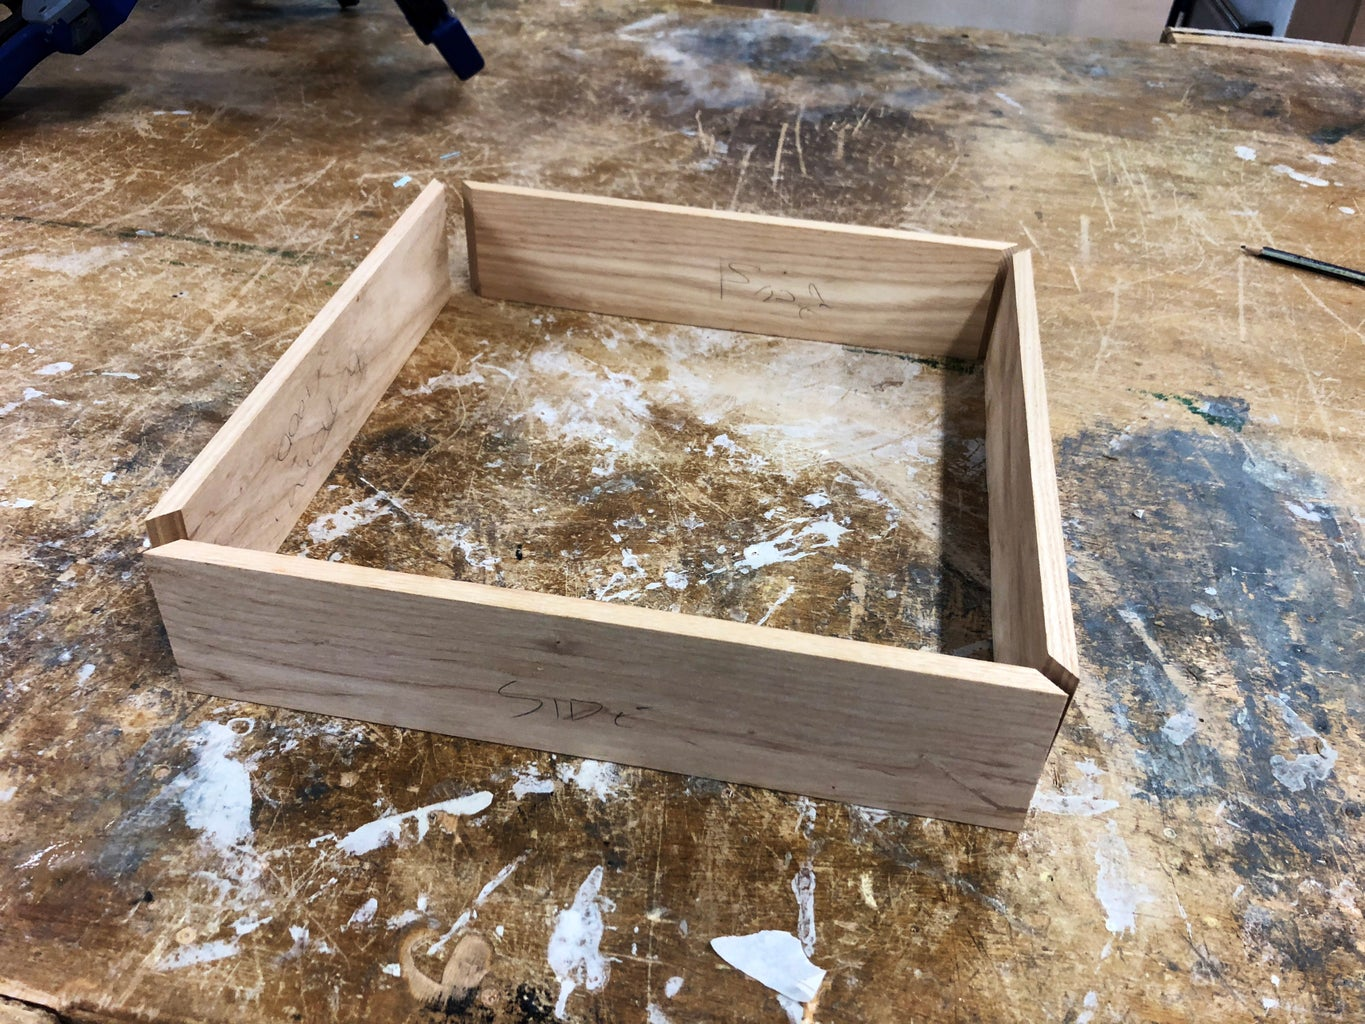 Gluing the Maple Wood Pieces Into a Frame